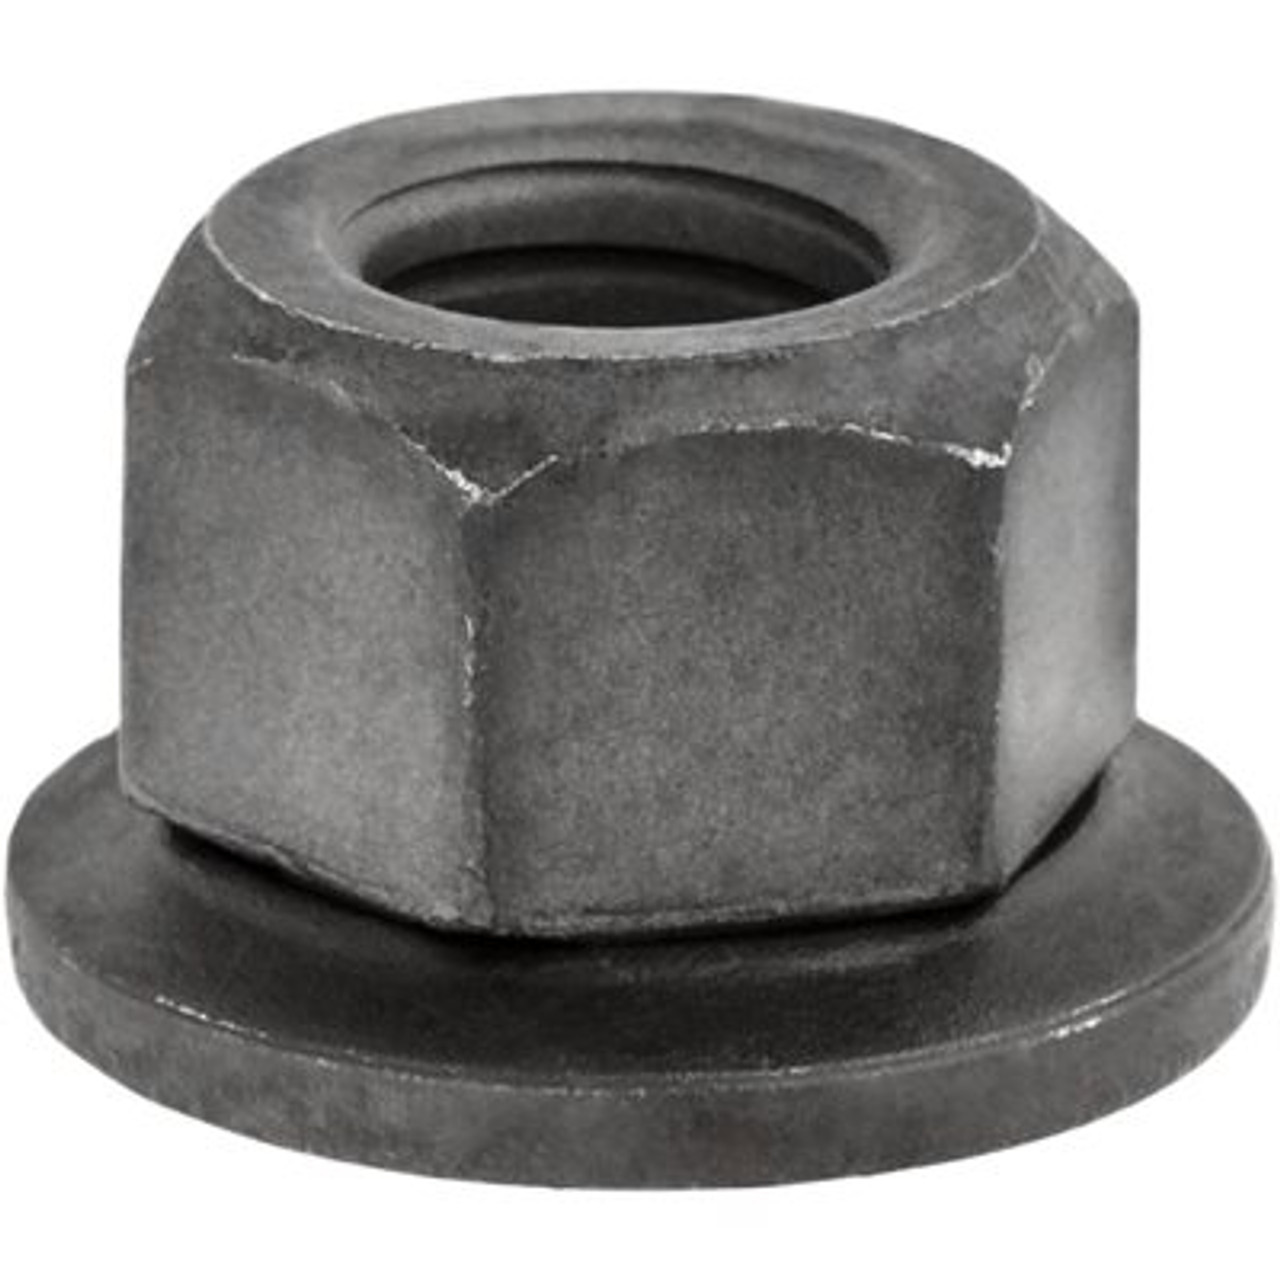 Screw Size : M5-.80 Across Flats : 10MM Overall Height : 7MM Washer Diameter : 15MM Finish : Phosphate Ford OEM: N621903 Pcs/Unit: 50 Country: TW Catalog Page #: 139